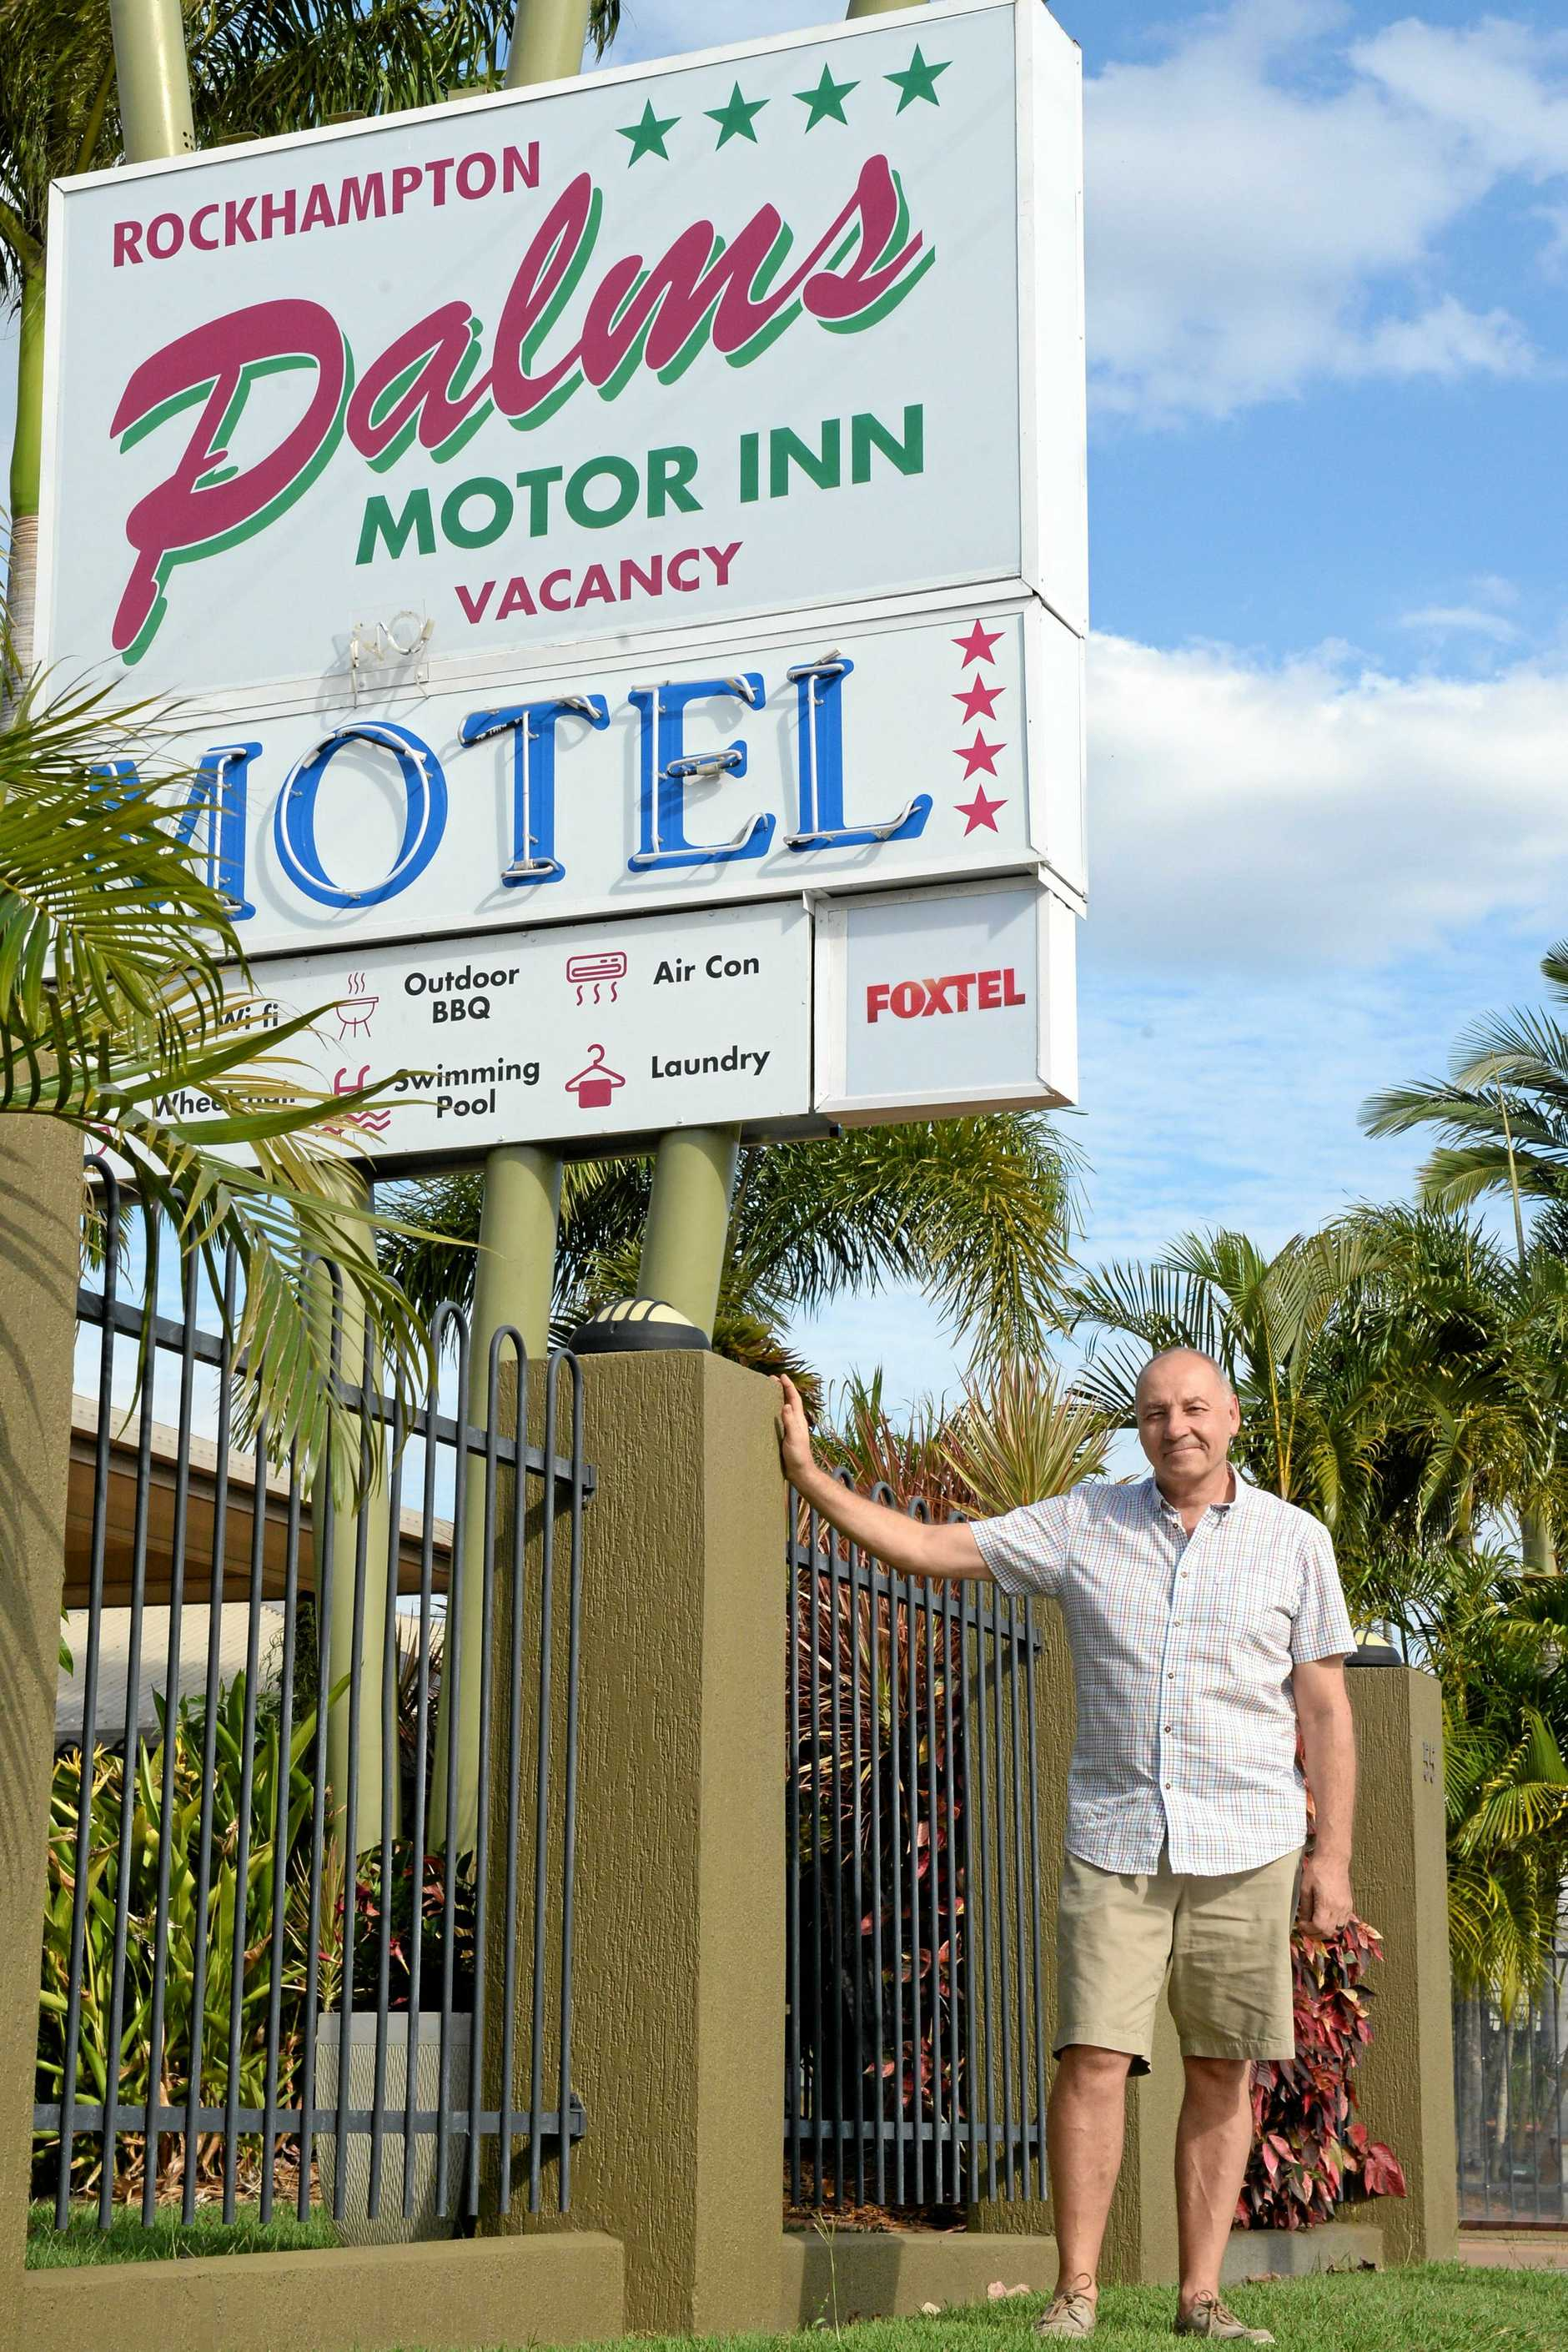 UNCERTAIN IMPACT: Rockhampton Palms Motor Inn manager Graham Noble isnt convinced there will be a detrimental impact to his business from the Ring Road.